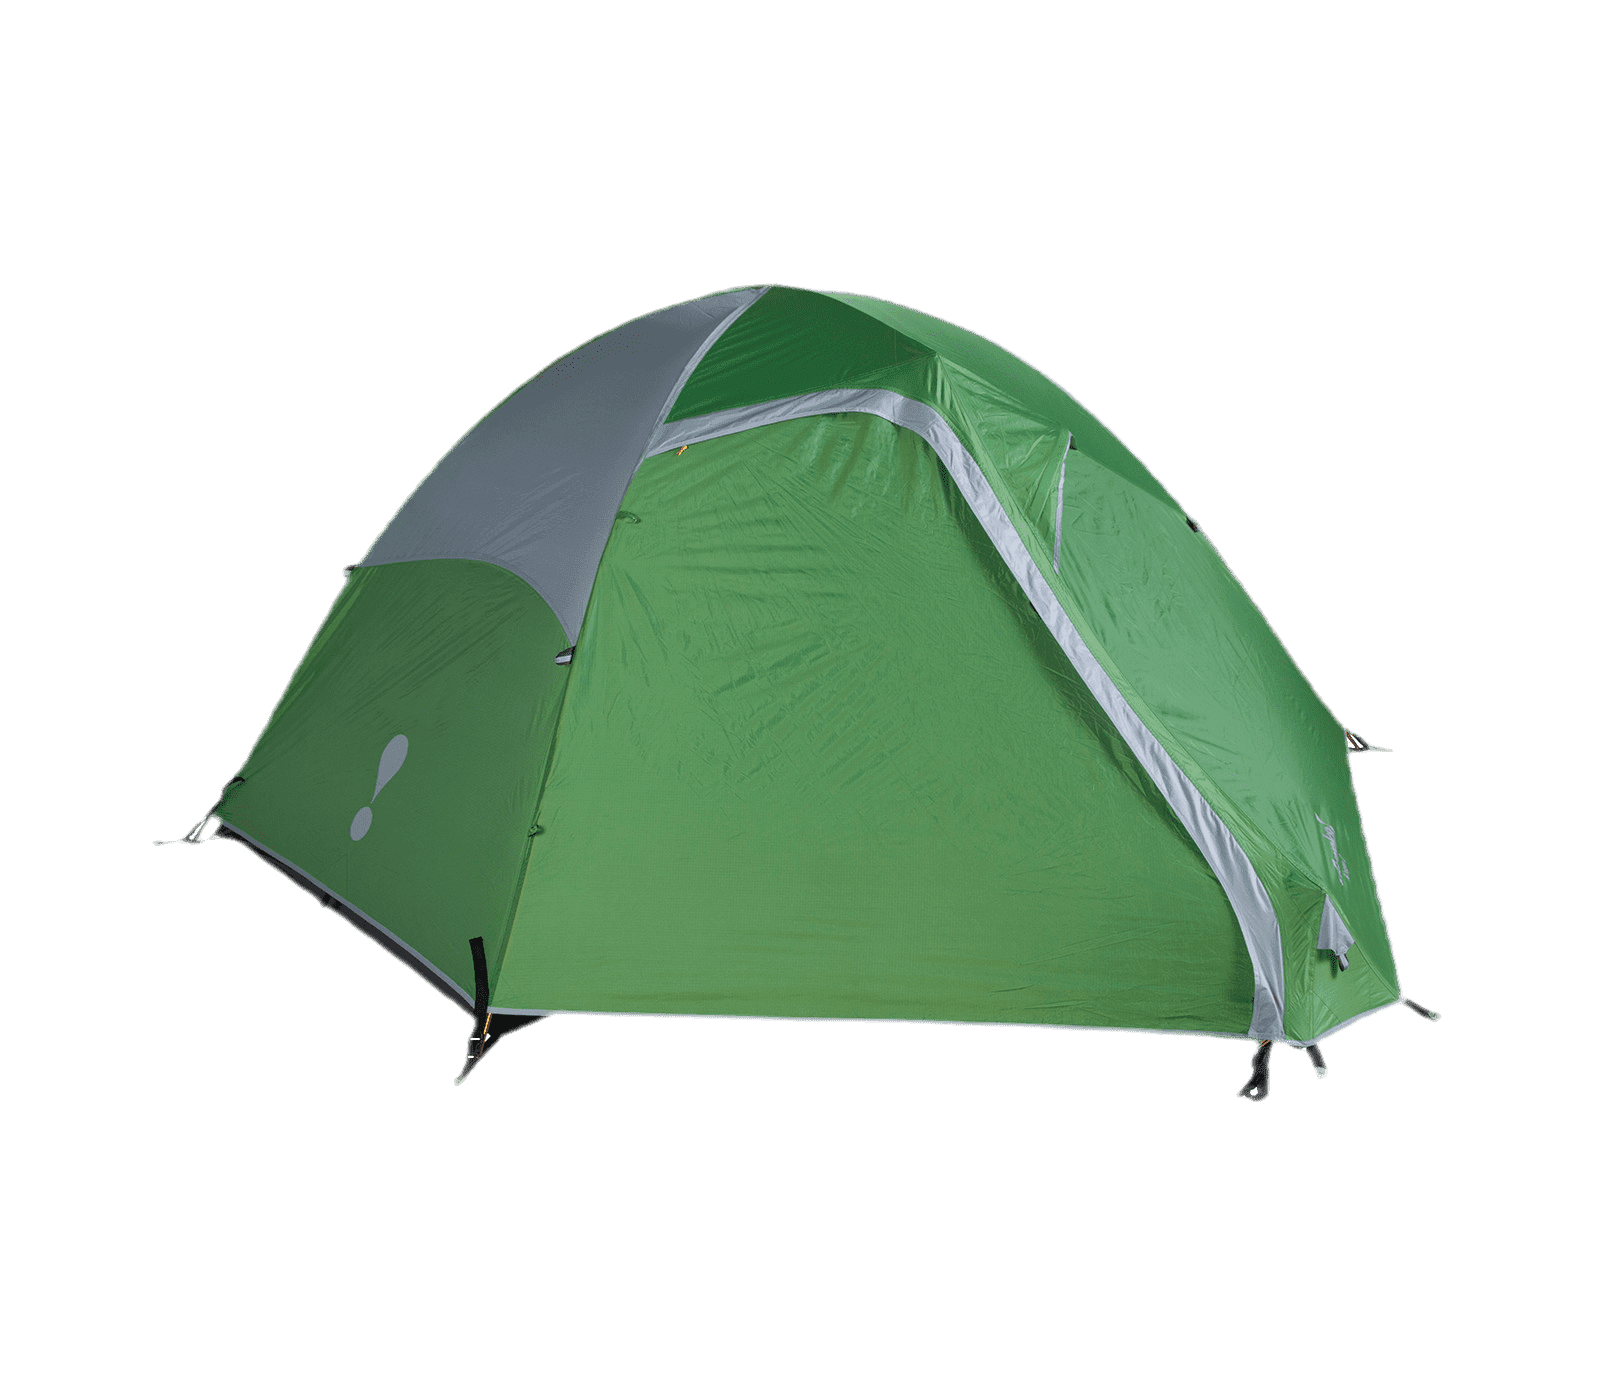 Tent keego 2 persoons polyester